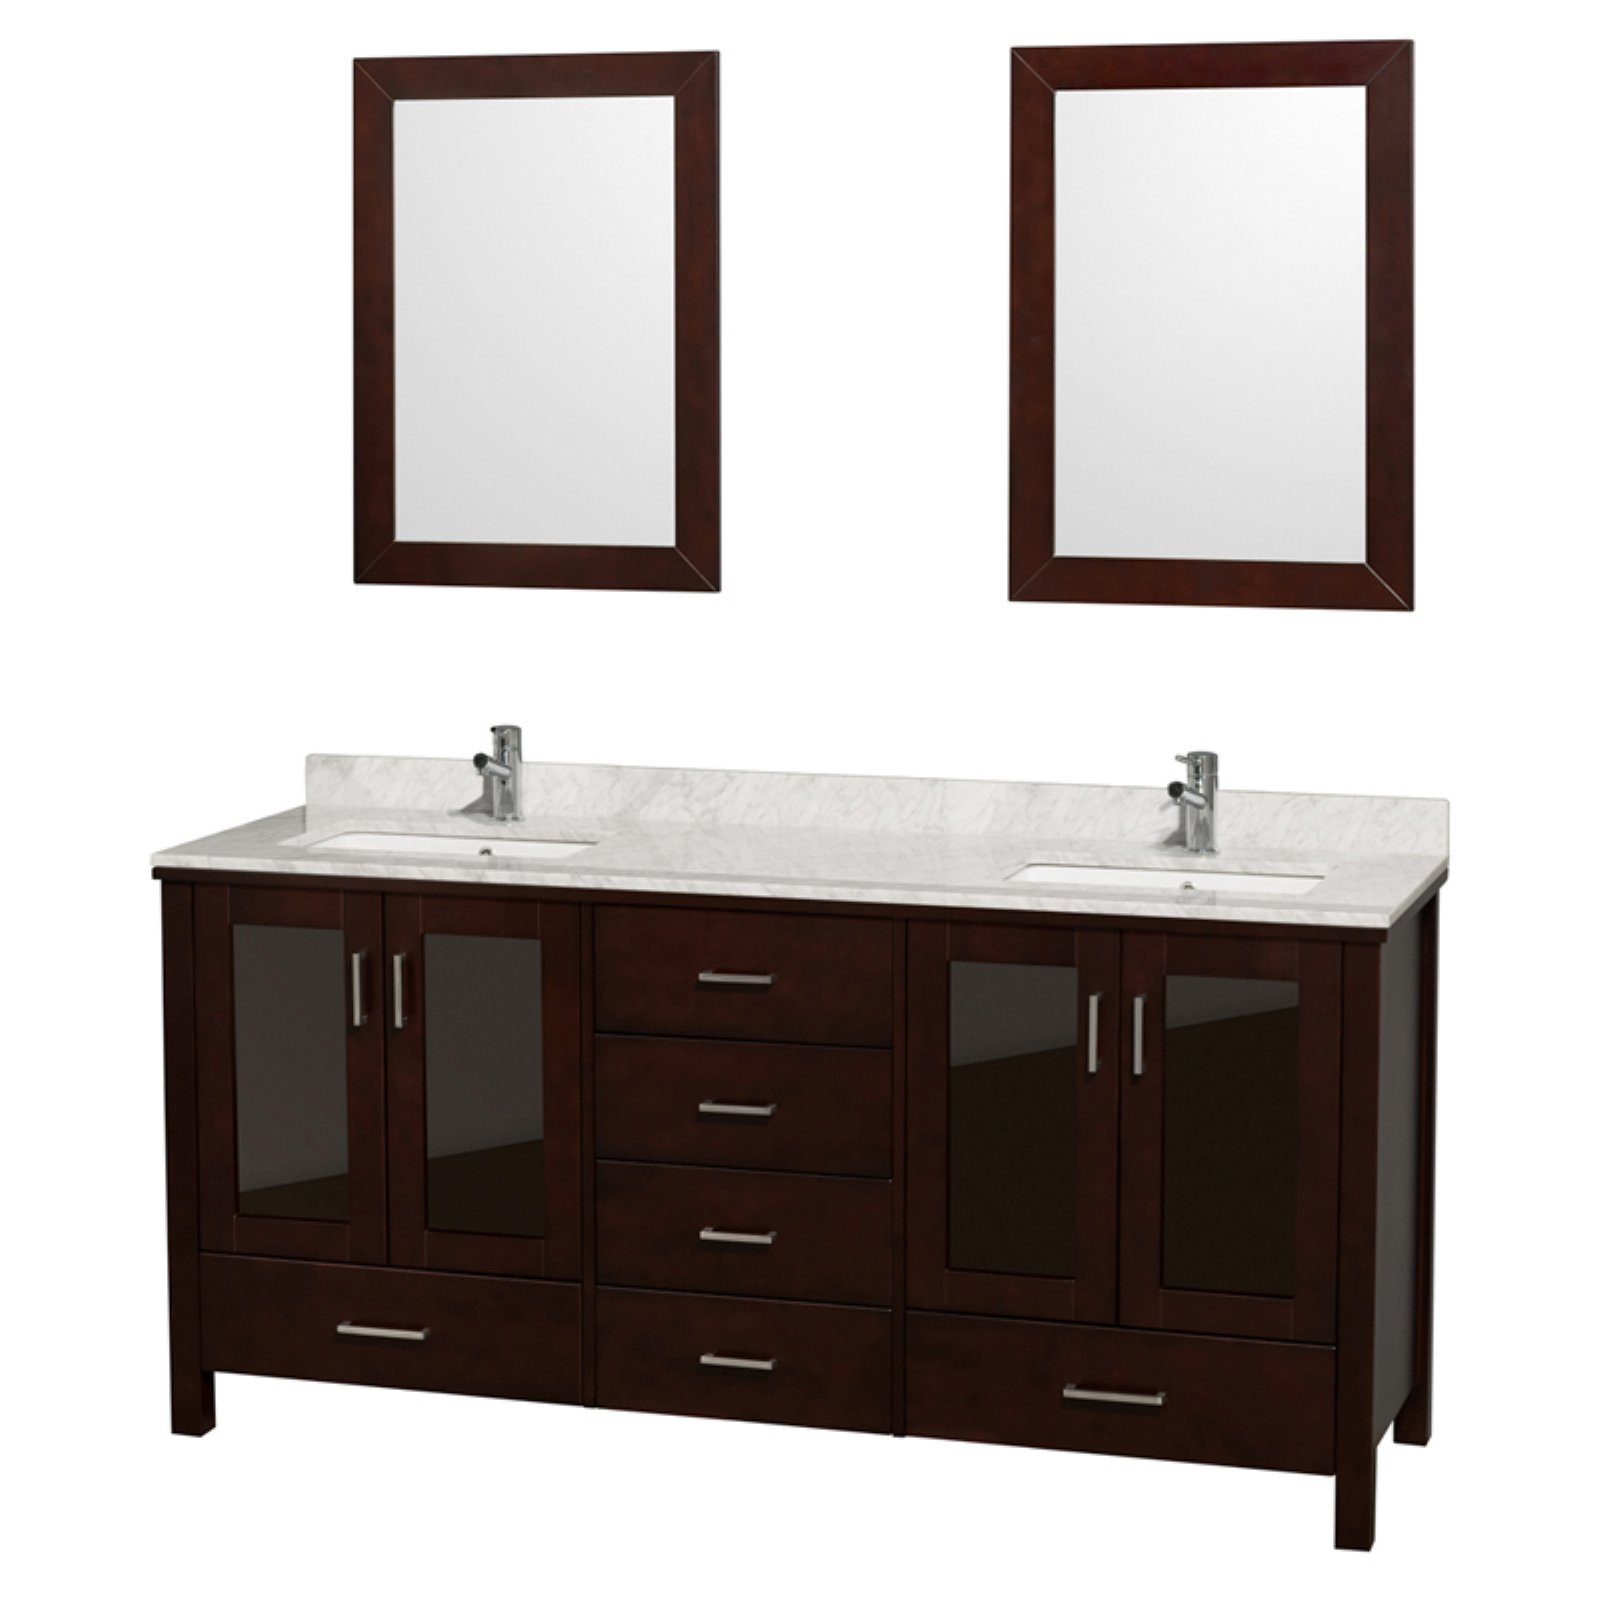 Wyndham Collection Lucy 72 inch Double Bathroom Vanity in Espresso, White Carrera Marble Countertop, White Undermount Sinks, and 24 inch Mirrors